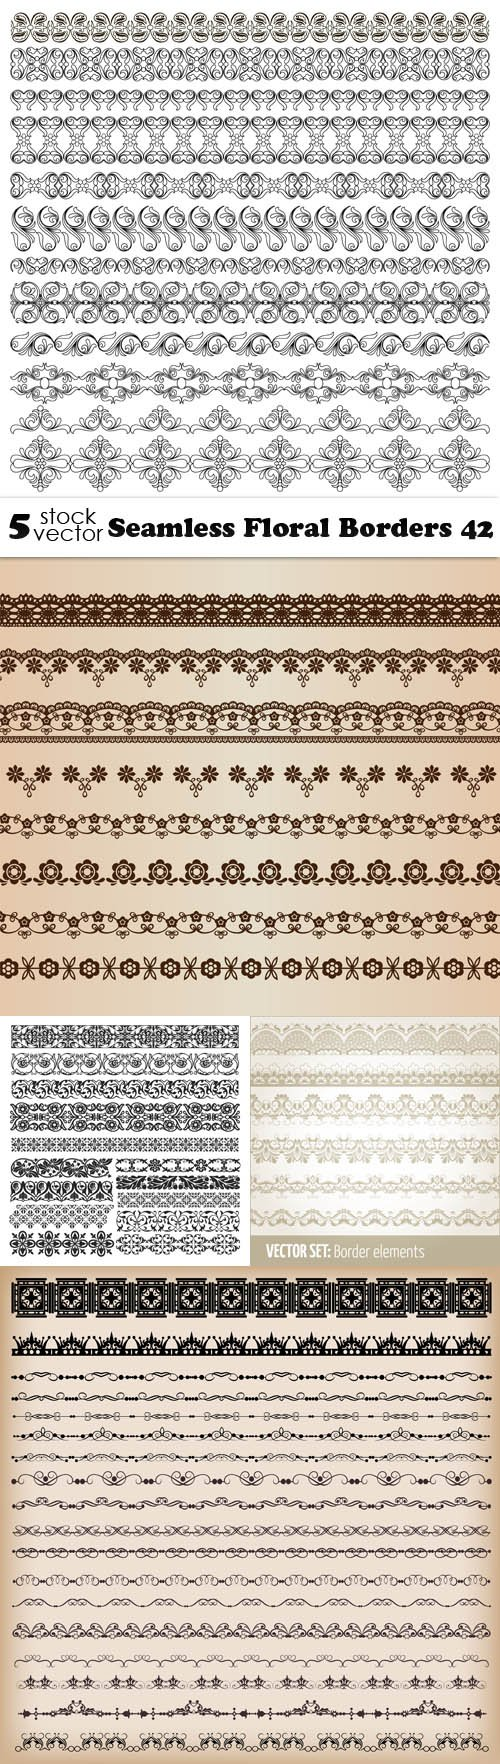 Vectors - Seamless Floral Borders 42